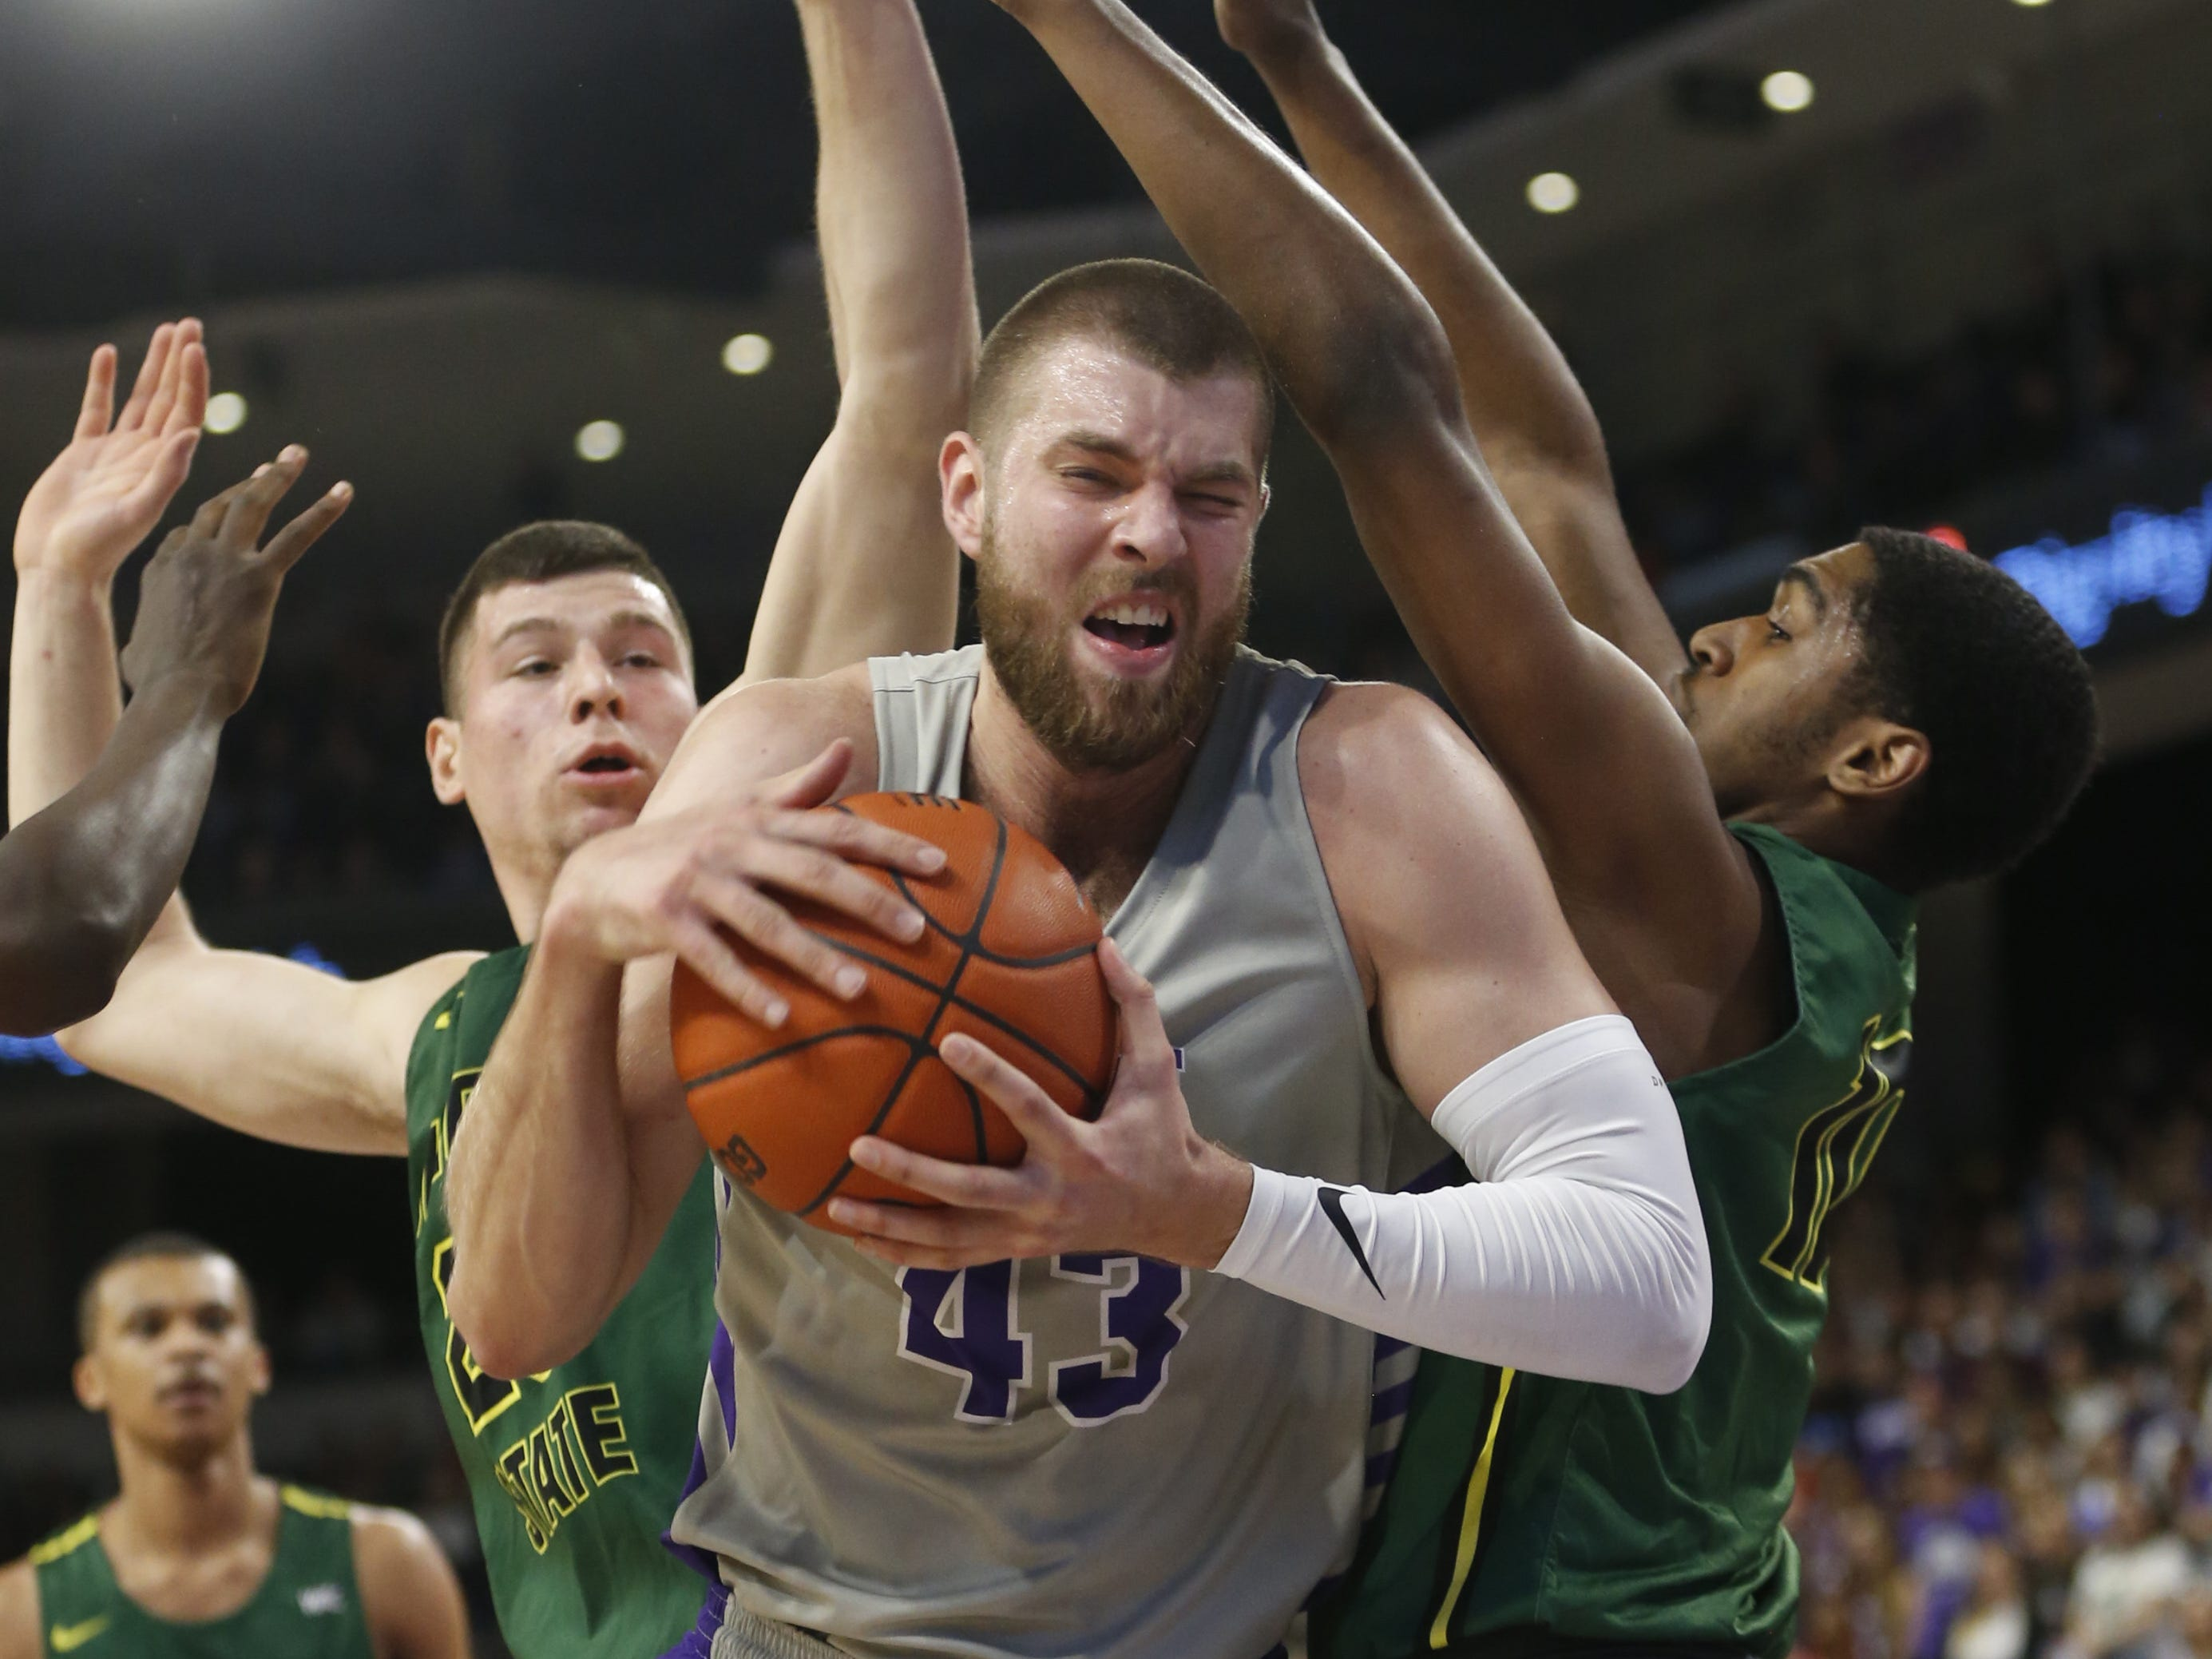 GCU's Michael Finke (43) grabs a rebound against Chicago State University's Anthony Harris (10) during the first half at Grand Canyon University Arena in Phoenix, Ariz. on January 17, 2019.